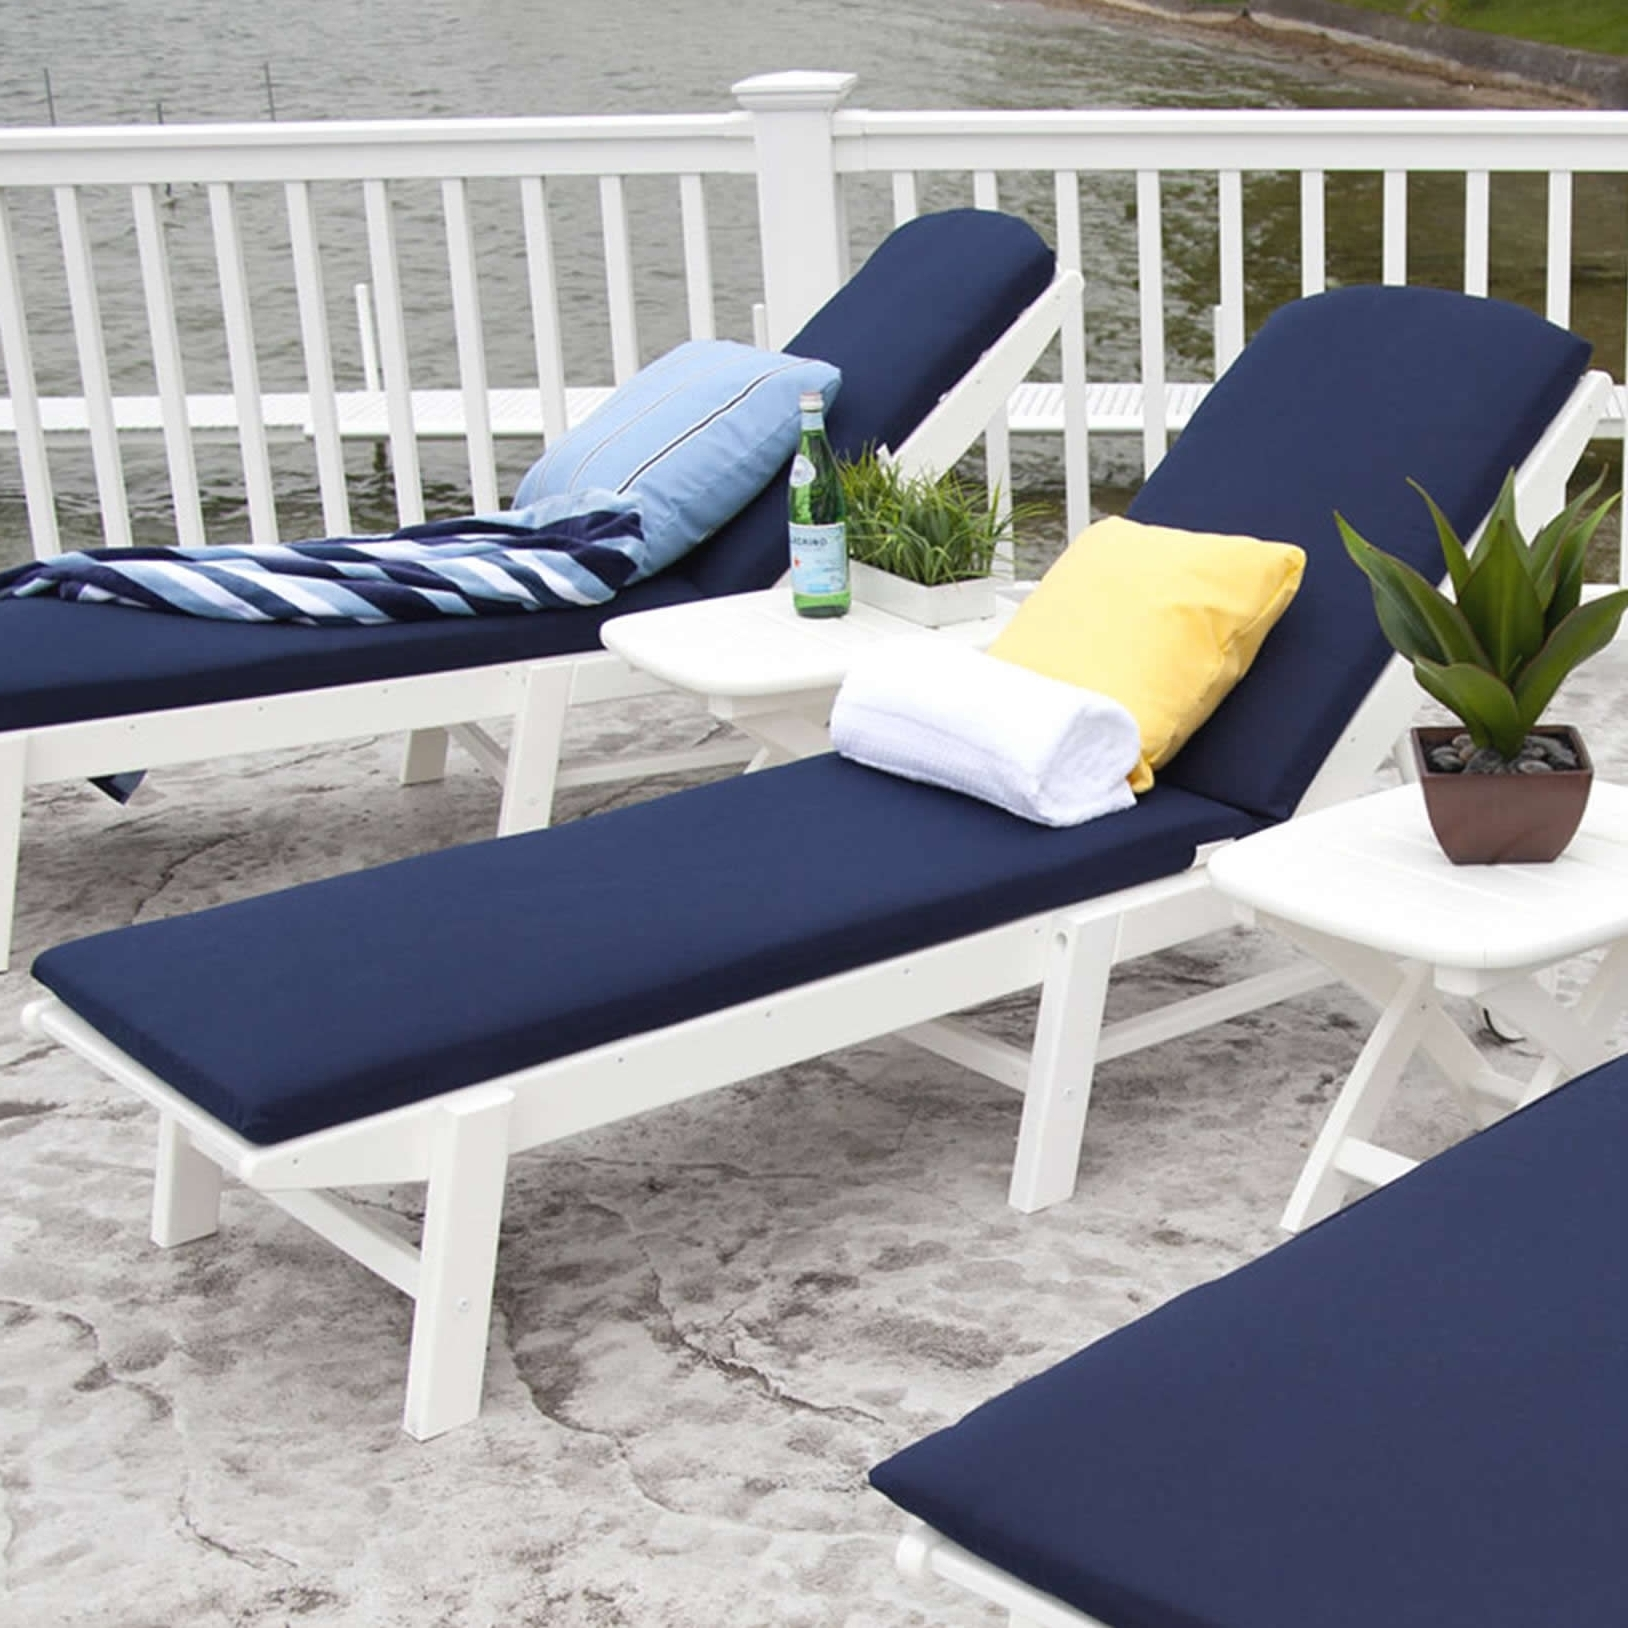 Target Chaise Lounge Cushions Pertaining To Well Liked Outdoor : Chaise Lounge Cushions Amazon Target Chaise Lounge Lowes (View 7 of 15)